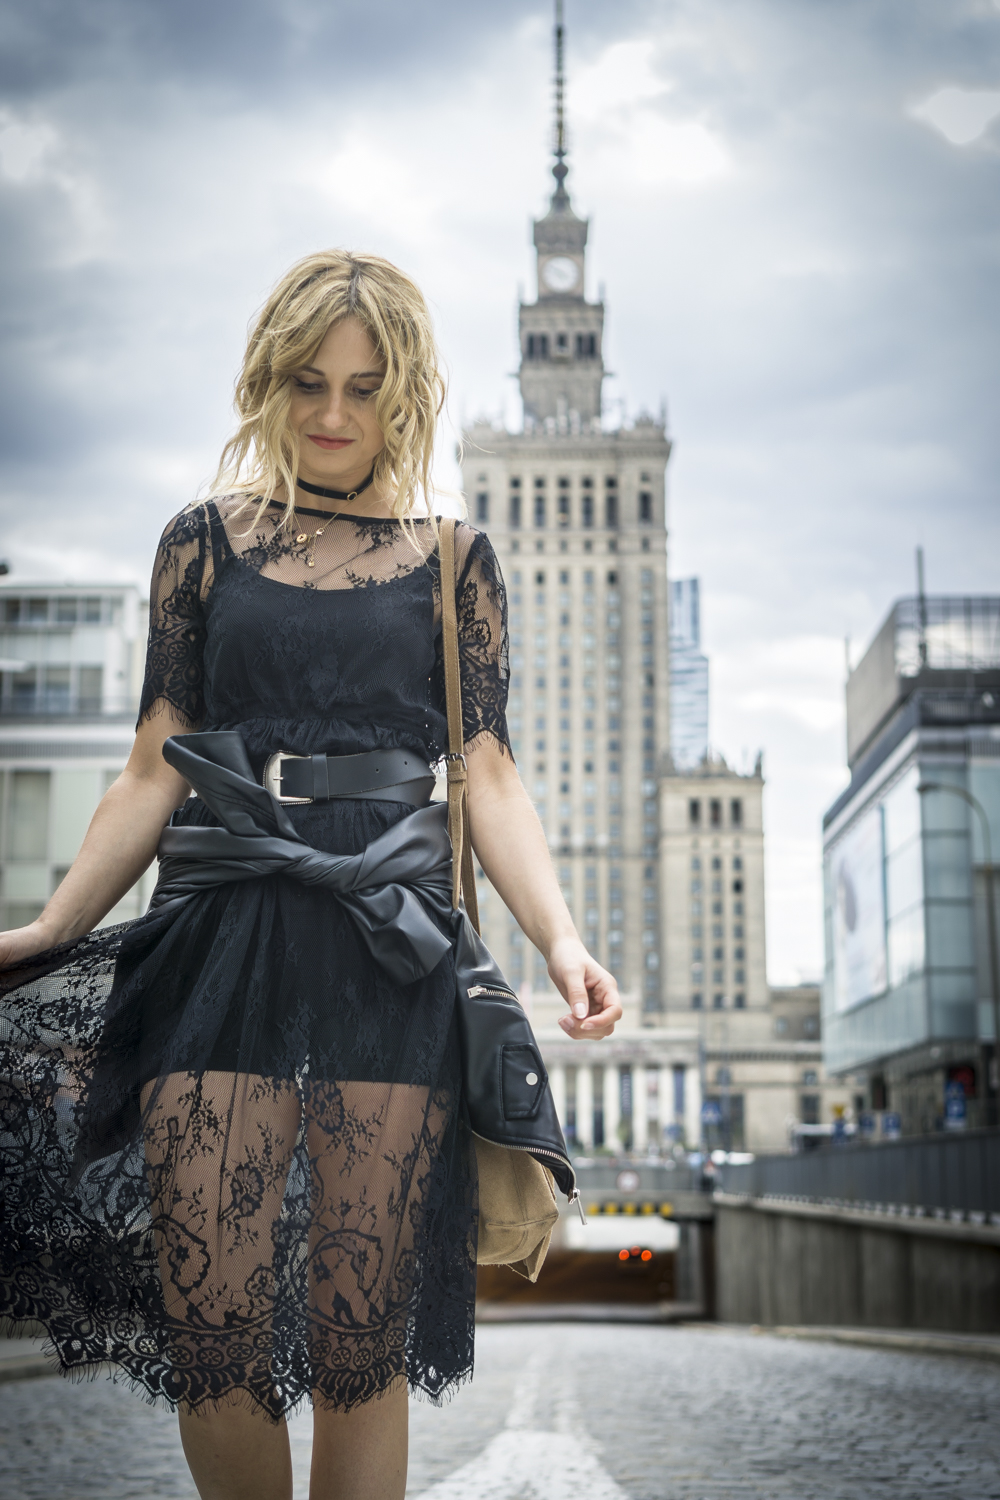 black lace dress casual chic street style fashion blonde tumblr girl look it girl lookbook ootd warsaw view